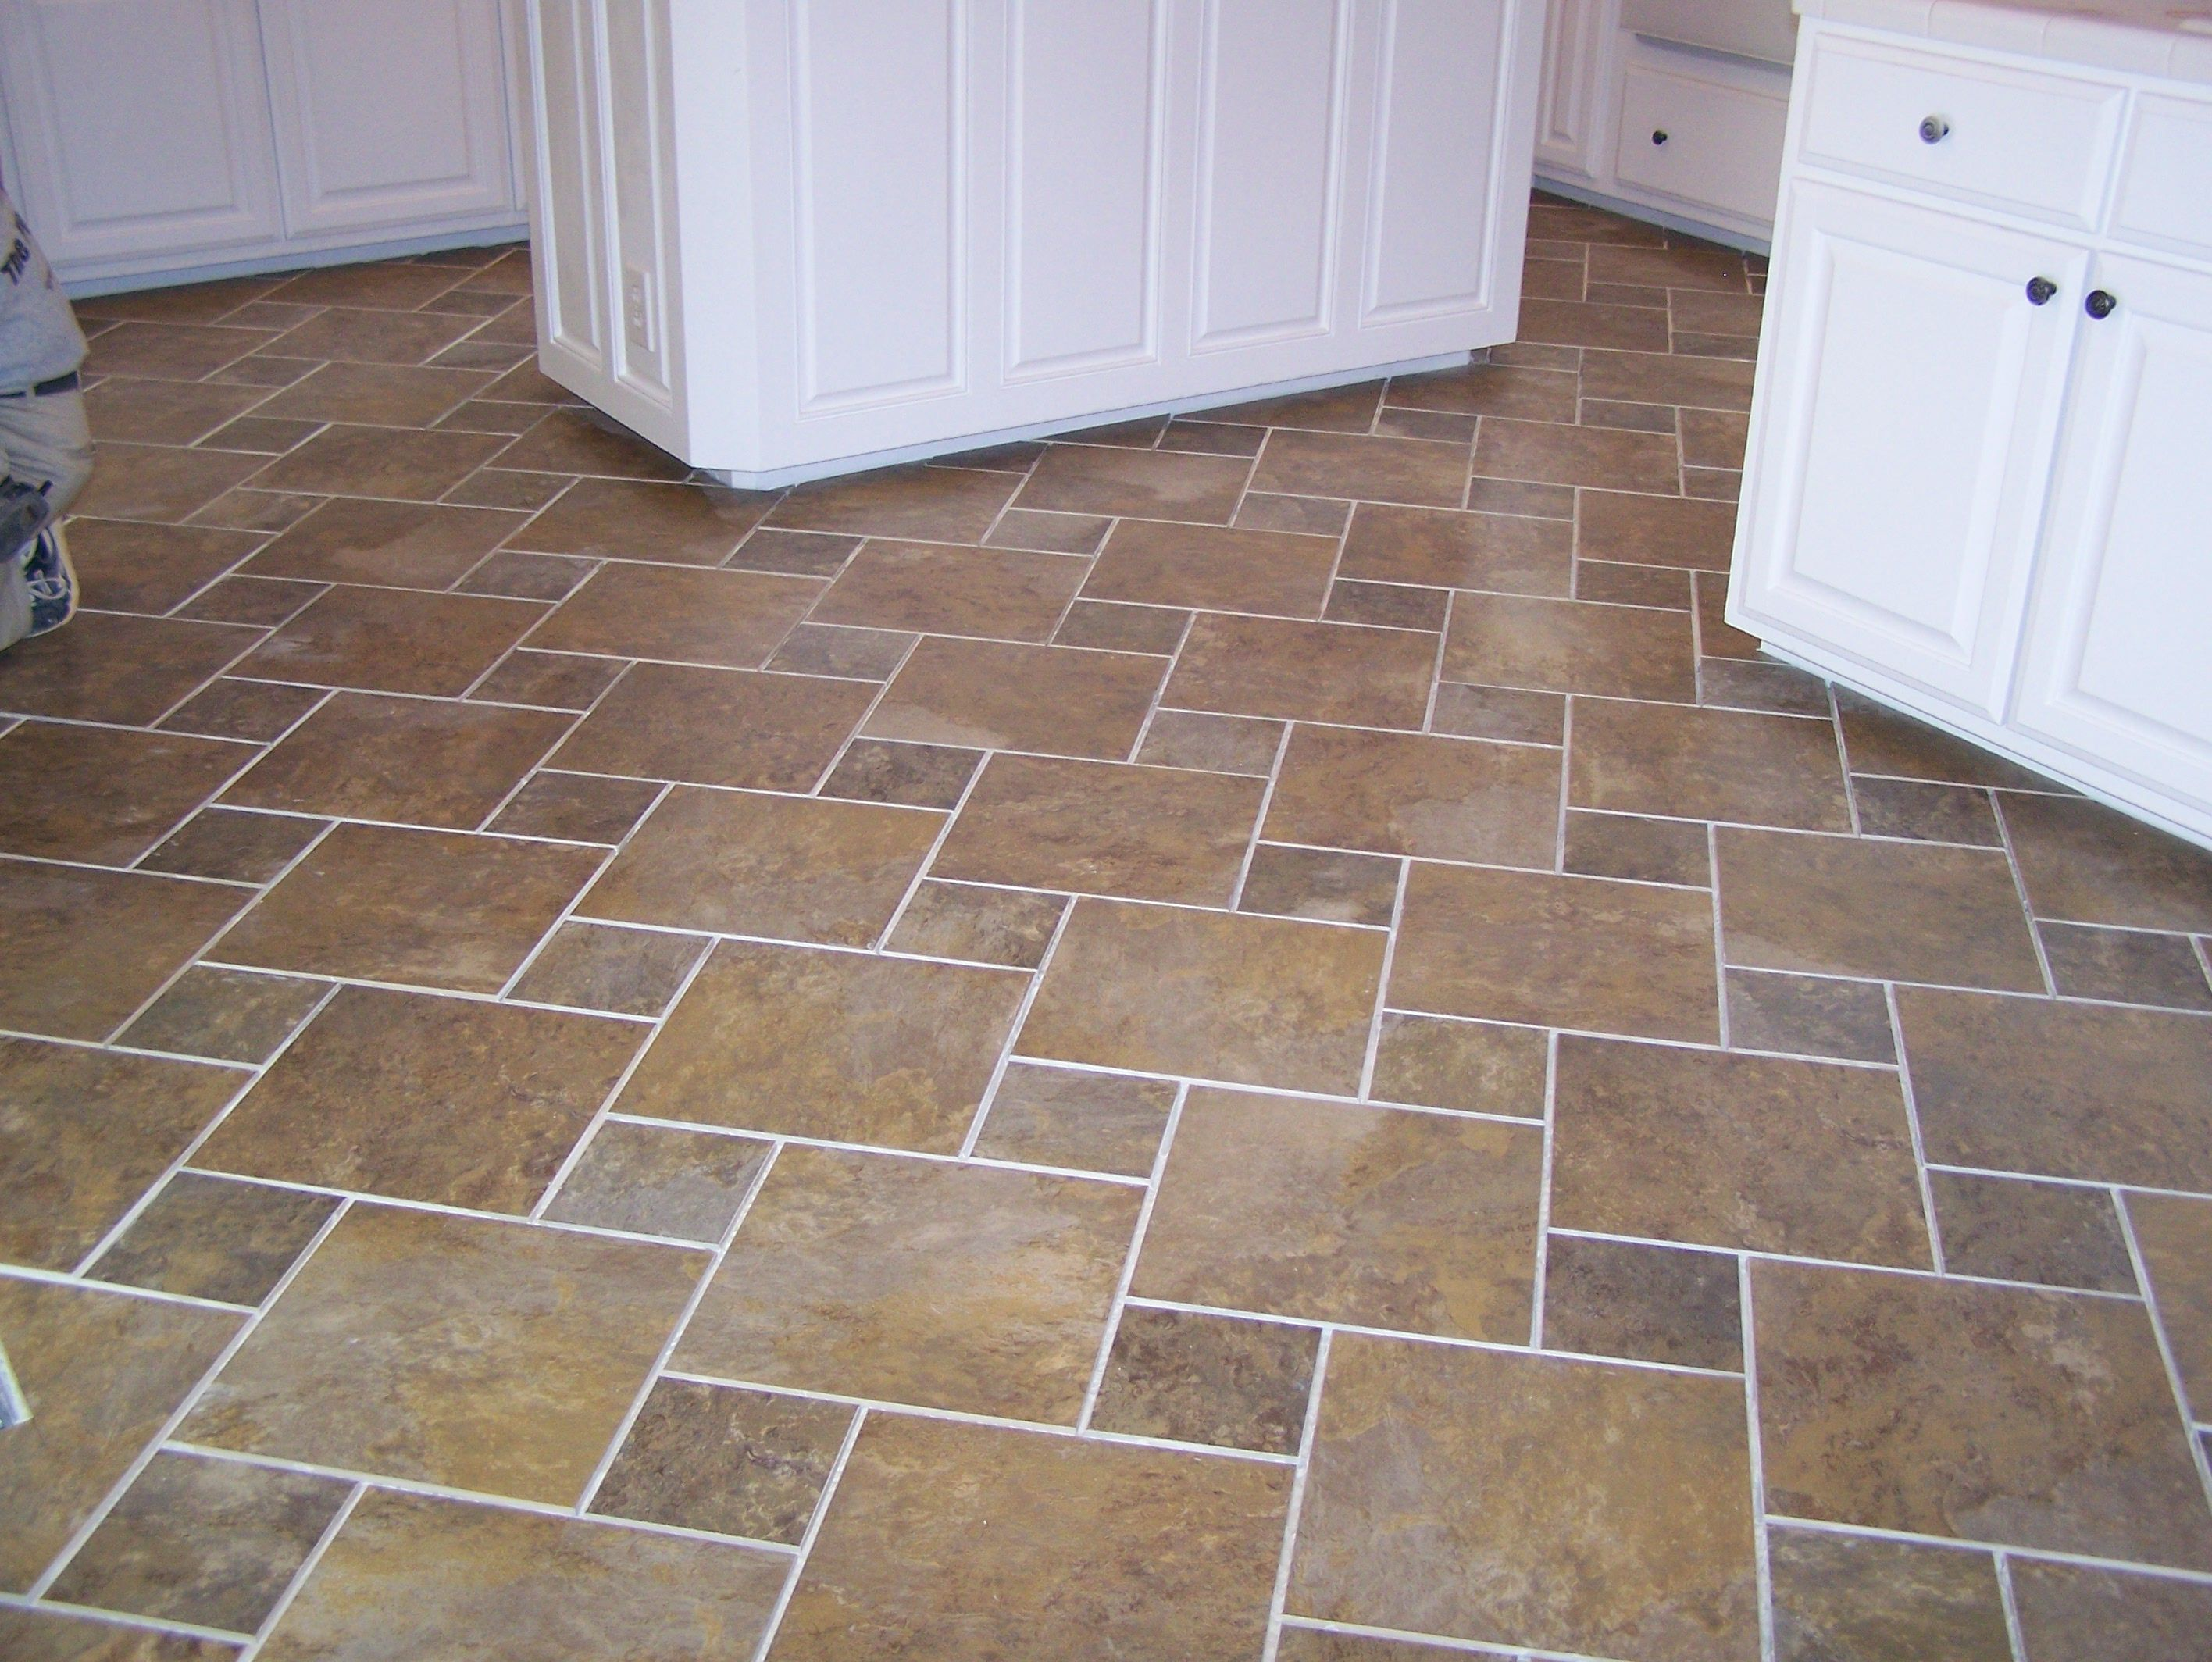 High Resolution Image Home Design Ideas Floor Tile Patterns